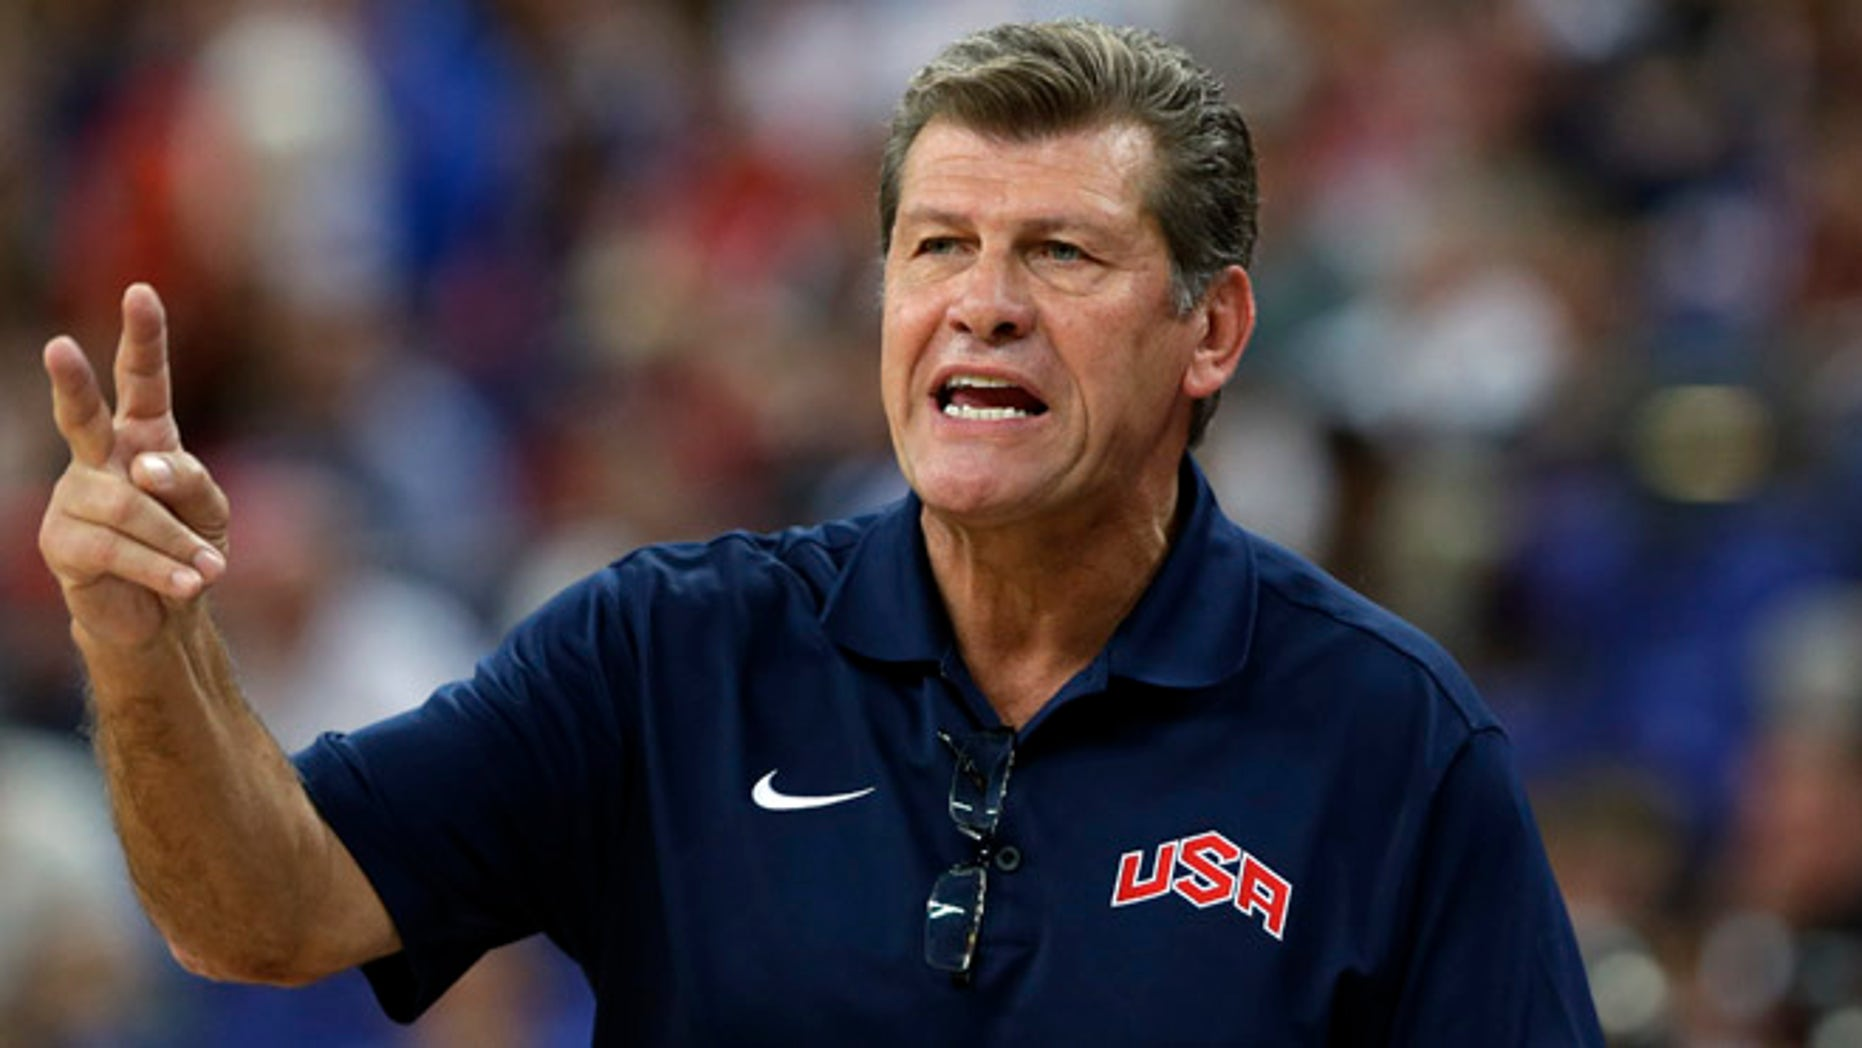 Aug. 11, 2012: United States coach Geno Auriemma talks to his players during a women's gold medal basketball game against France at the 2012 Summer Olympics, in London.